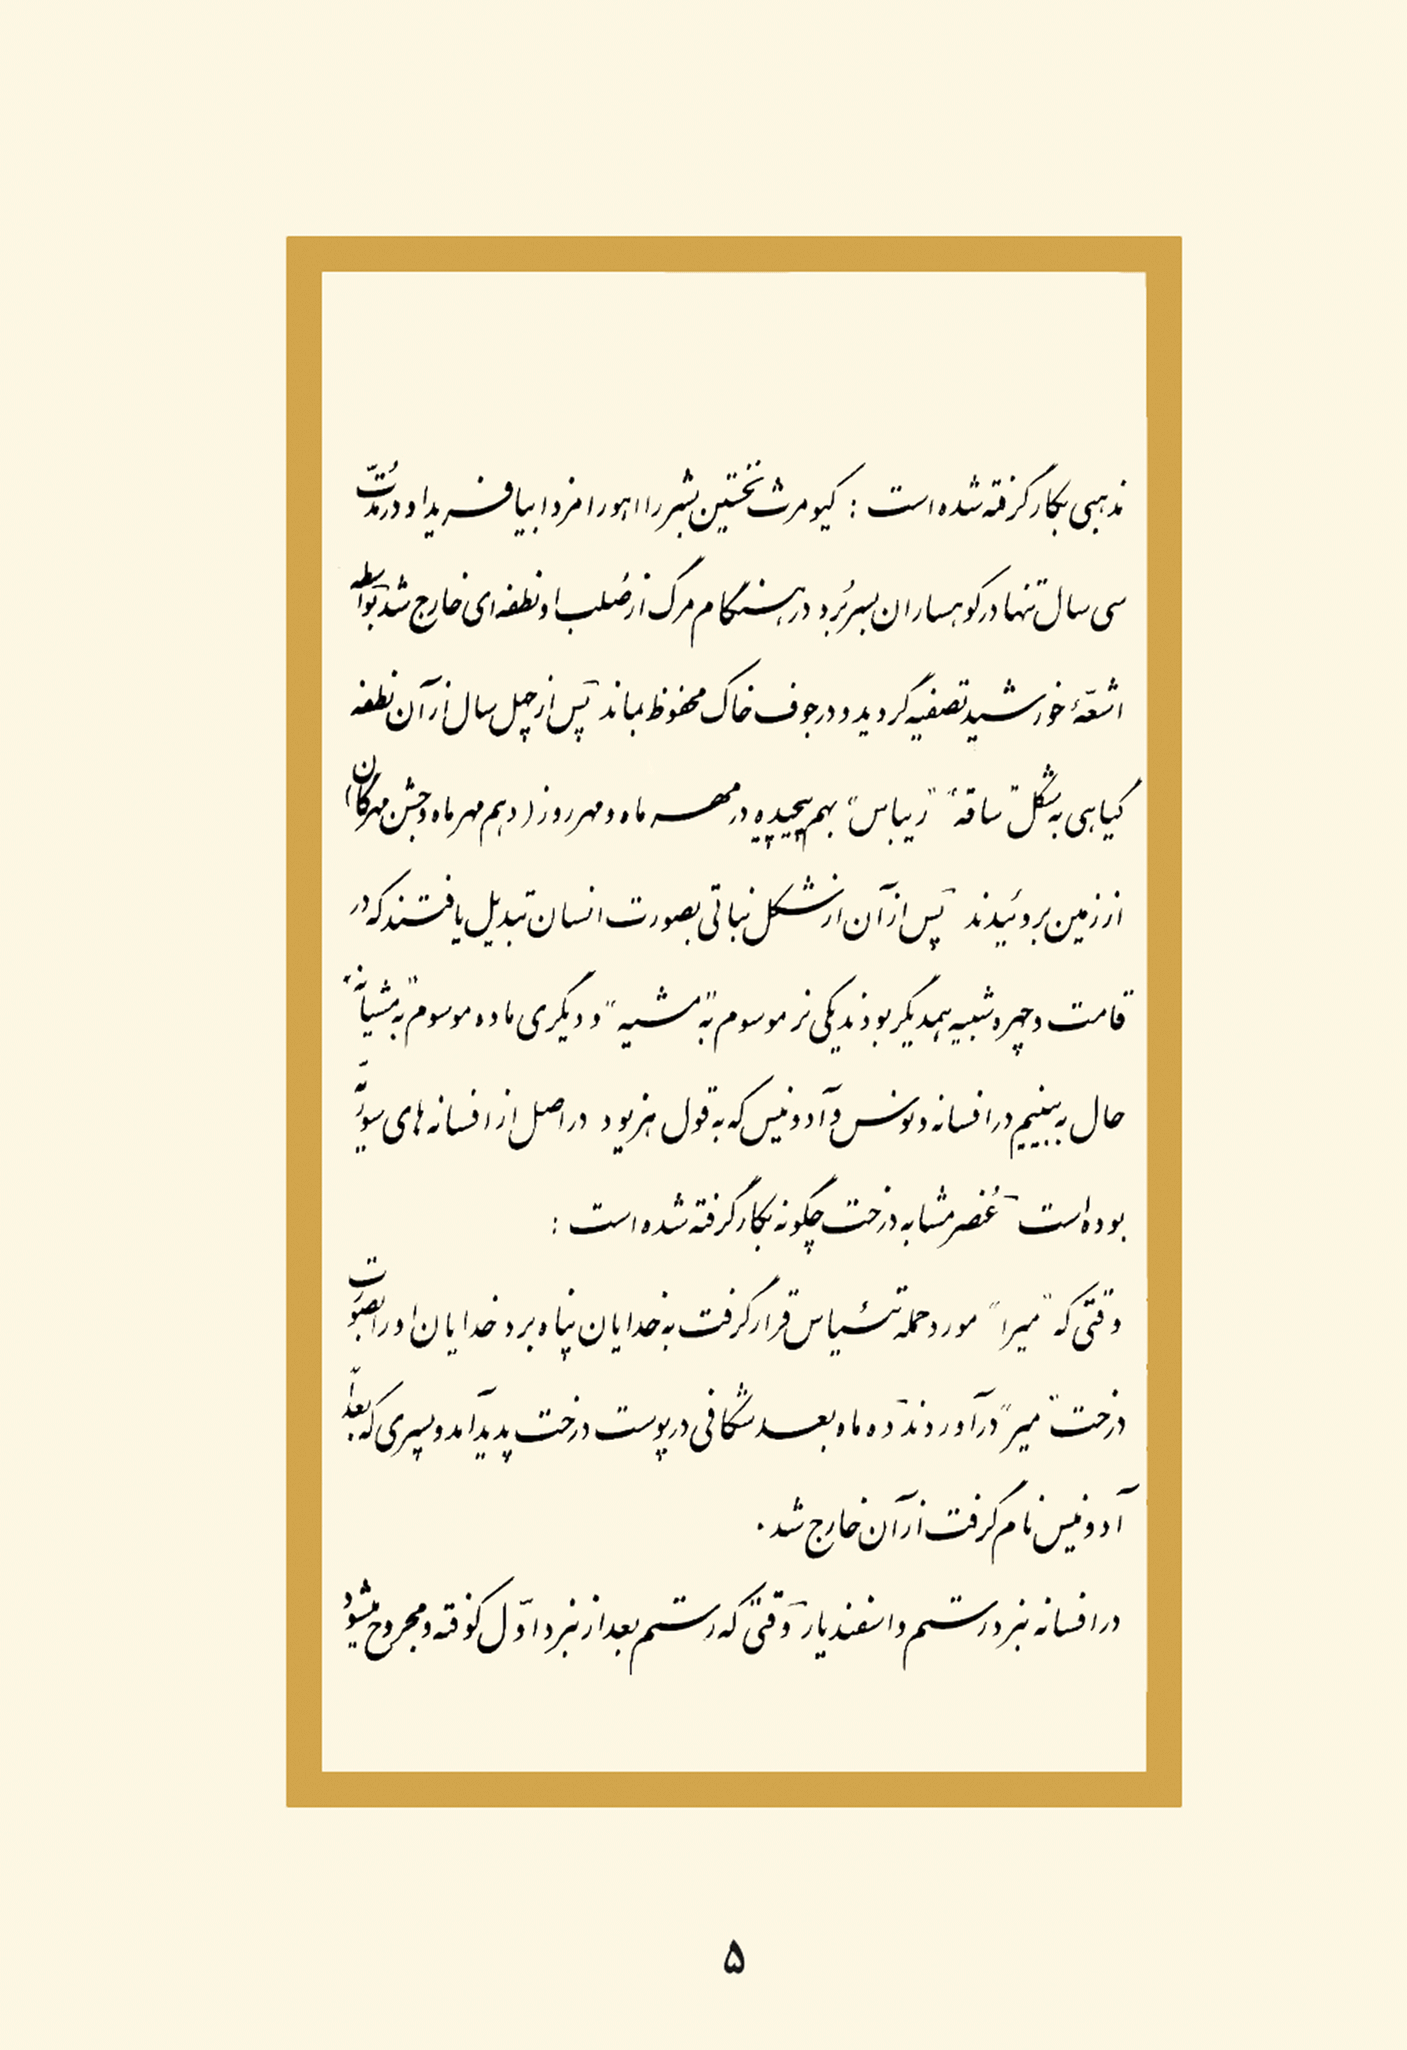 Layla and Majnun - Poetry by Nizami Ganjavi